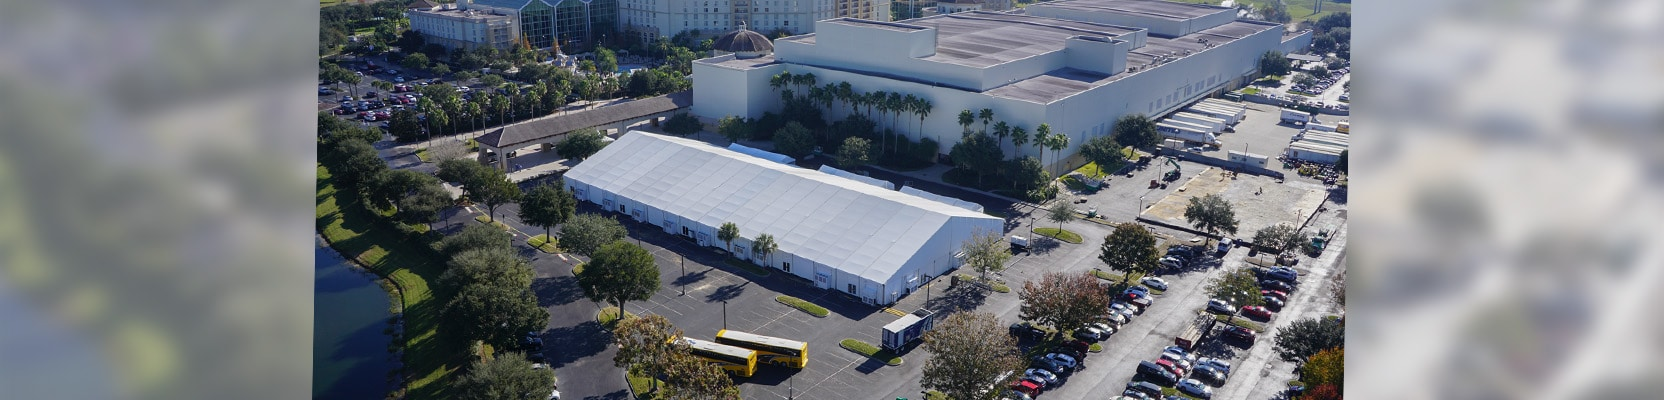 trade show corporate tent structure